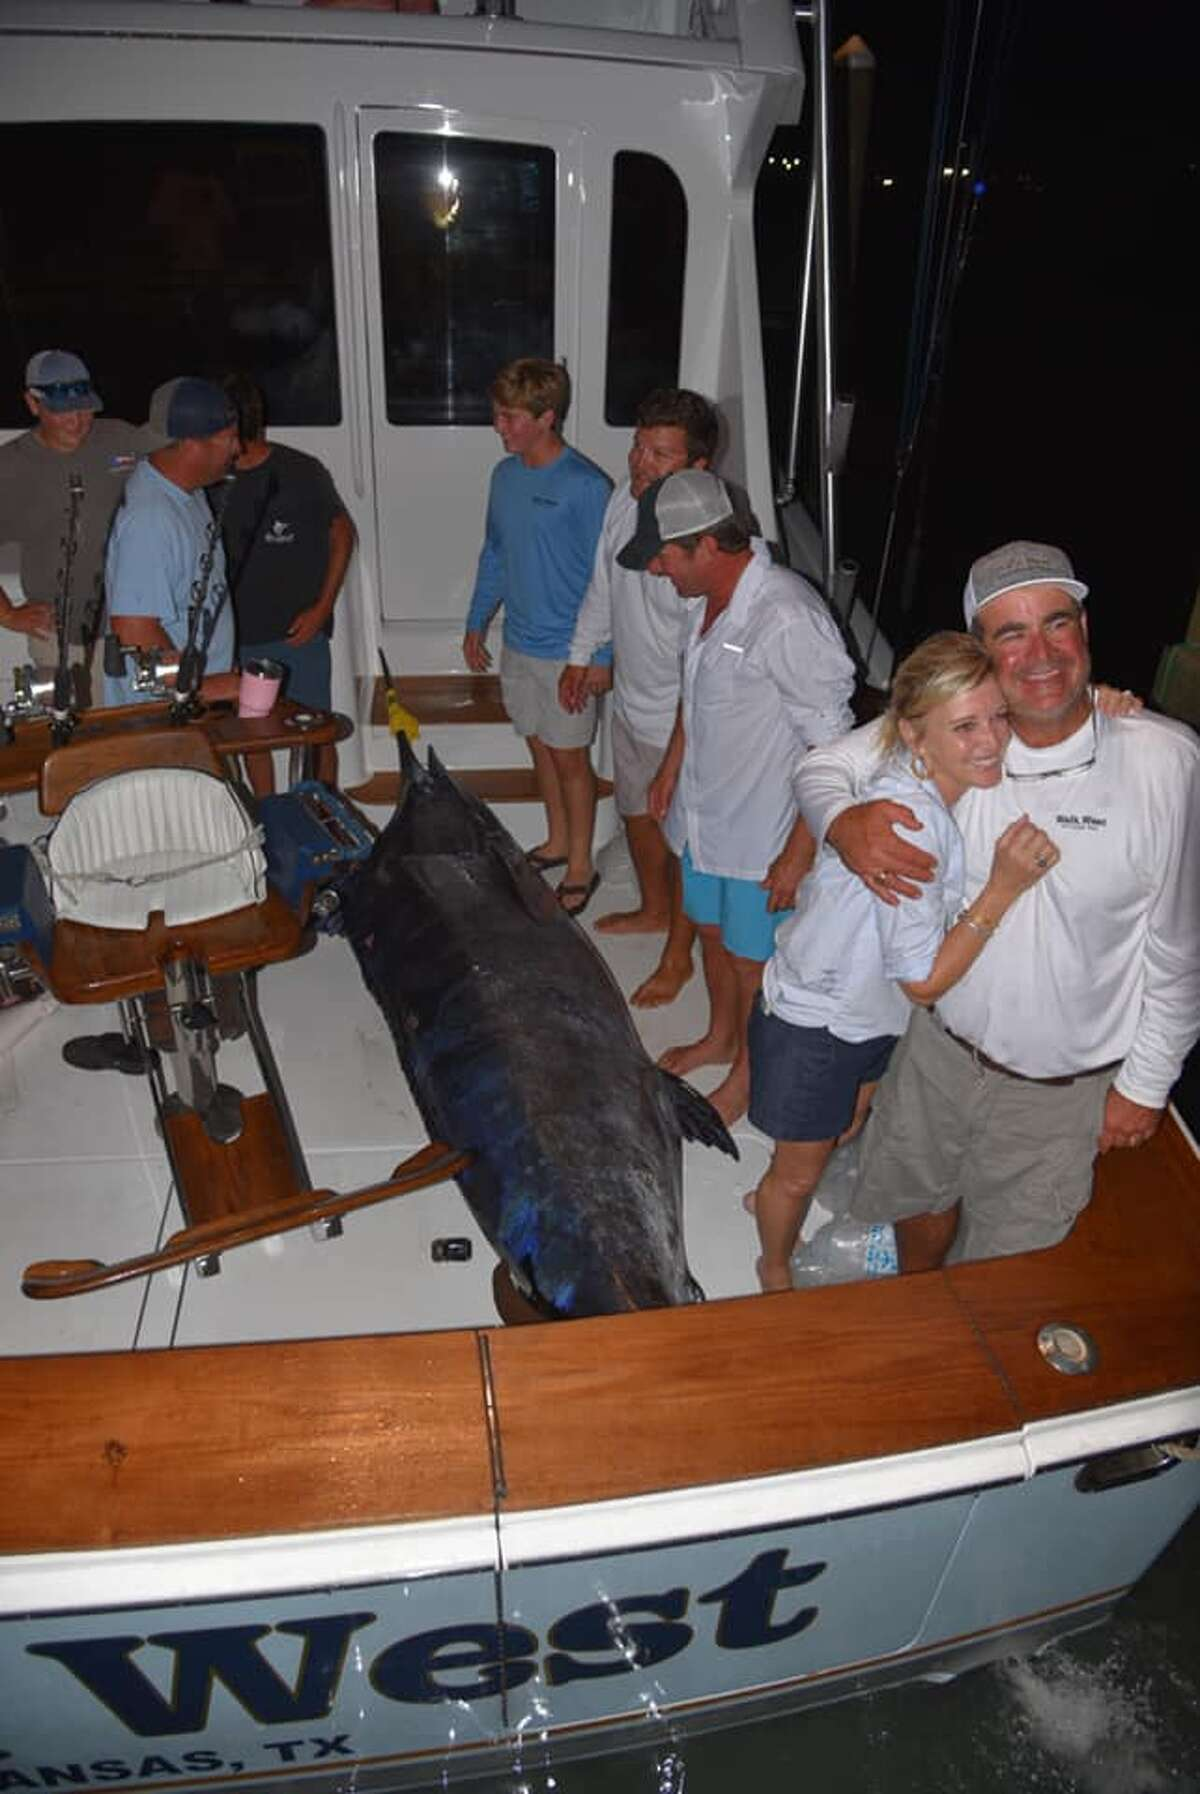 Fishermen competing in a the Texas Billfish Tournament last Friday caught a massive 737-pound blue marlin. According to tournament organizer Dave Cochrane, the fish was the largest blue marlin to ever be weighed in at Port Aransas.